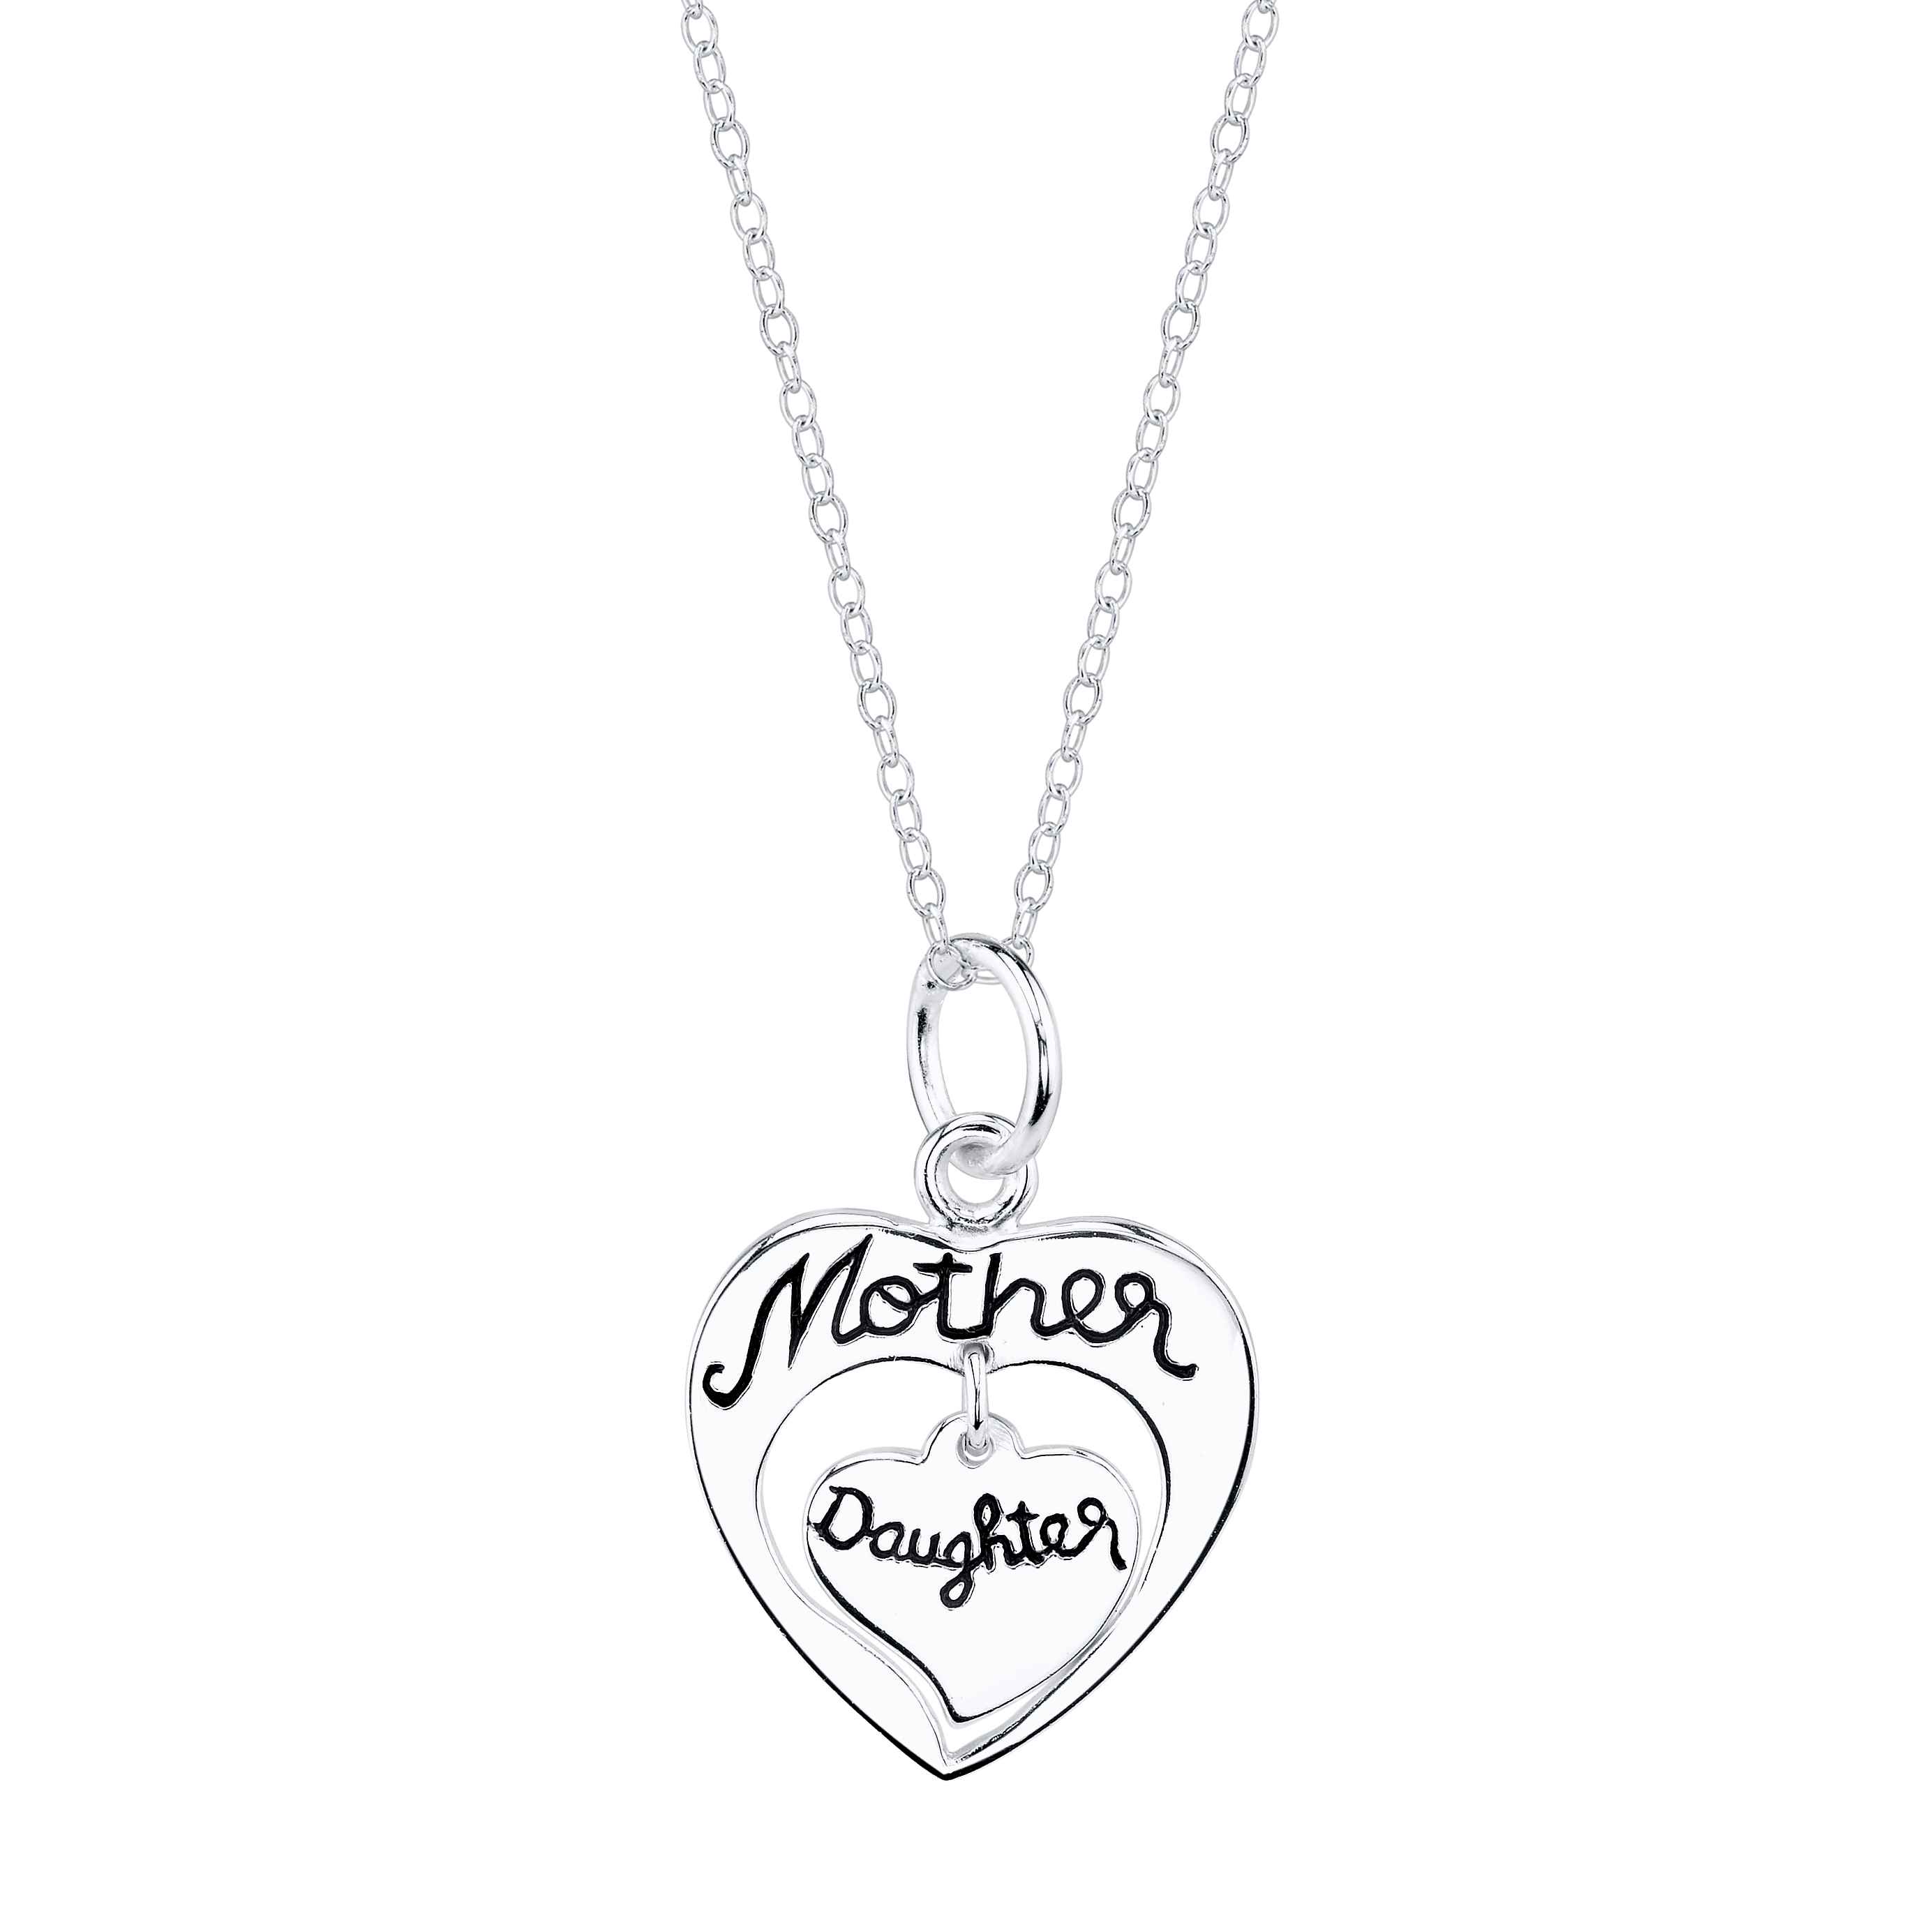 2769x2769 Sterling Silver Mother Daughter Heart Necklace